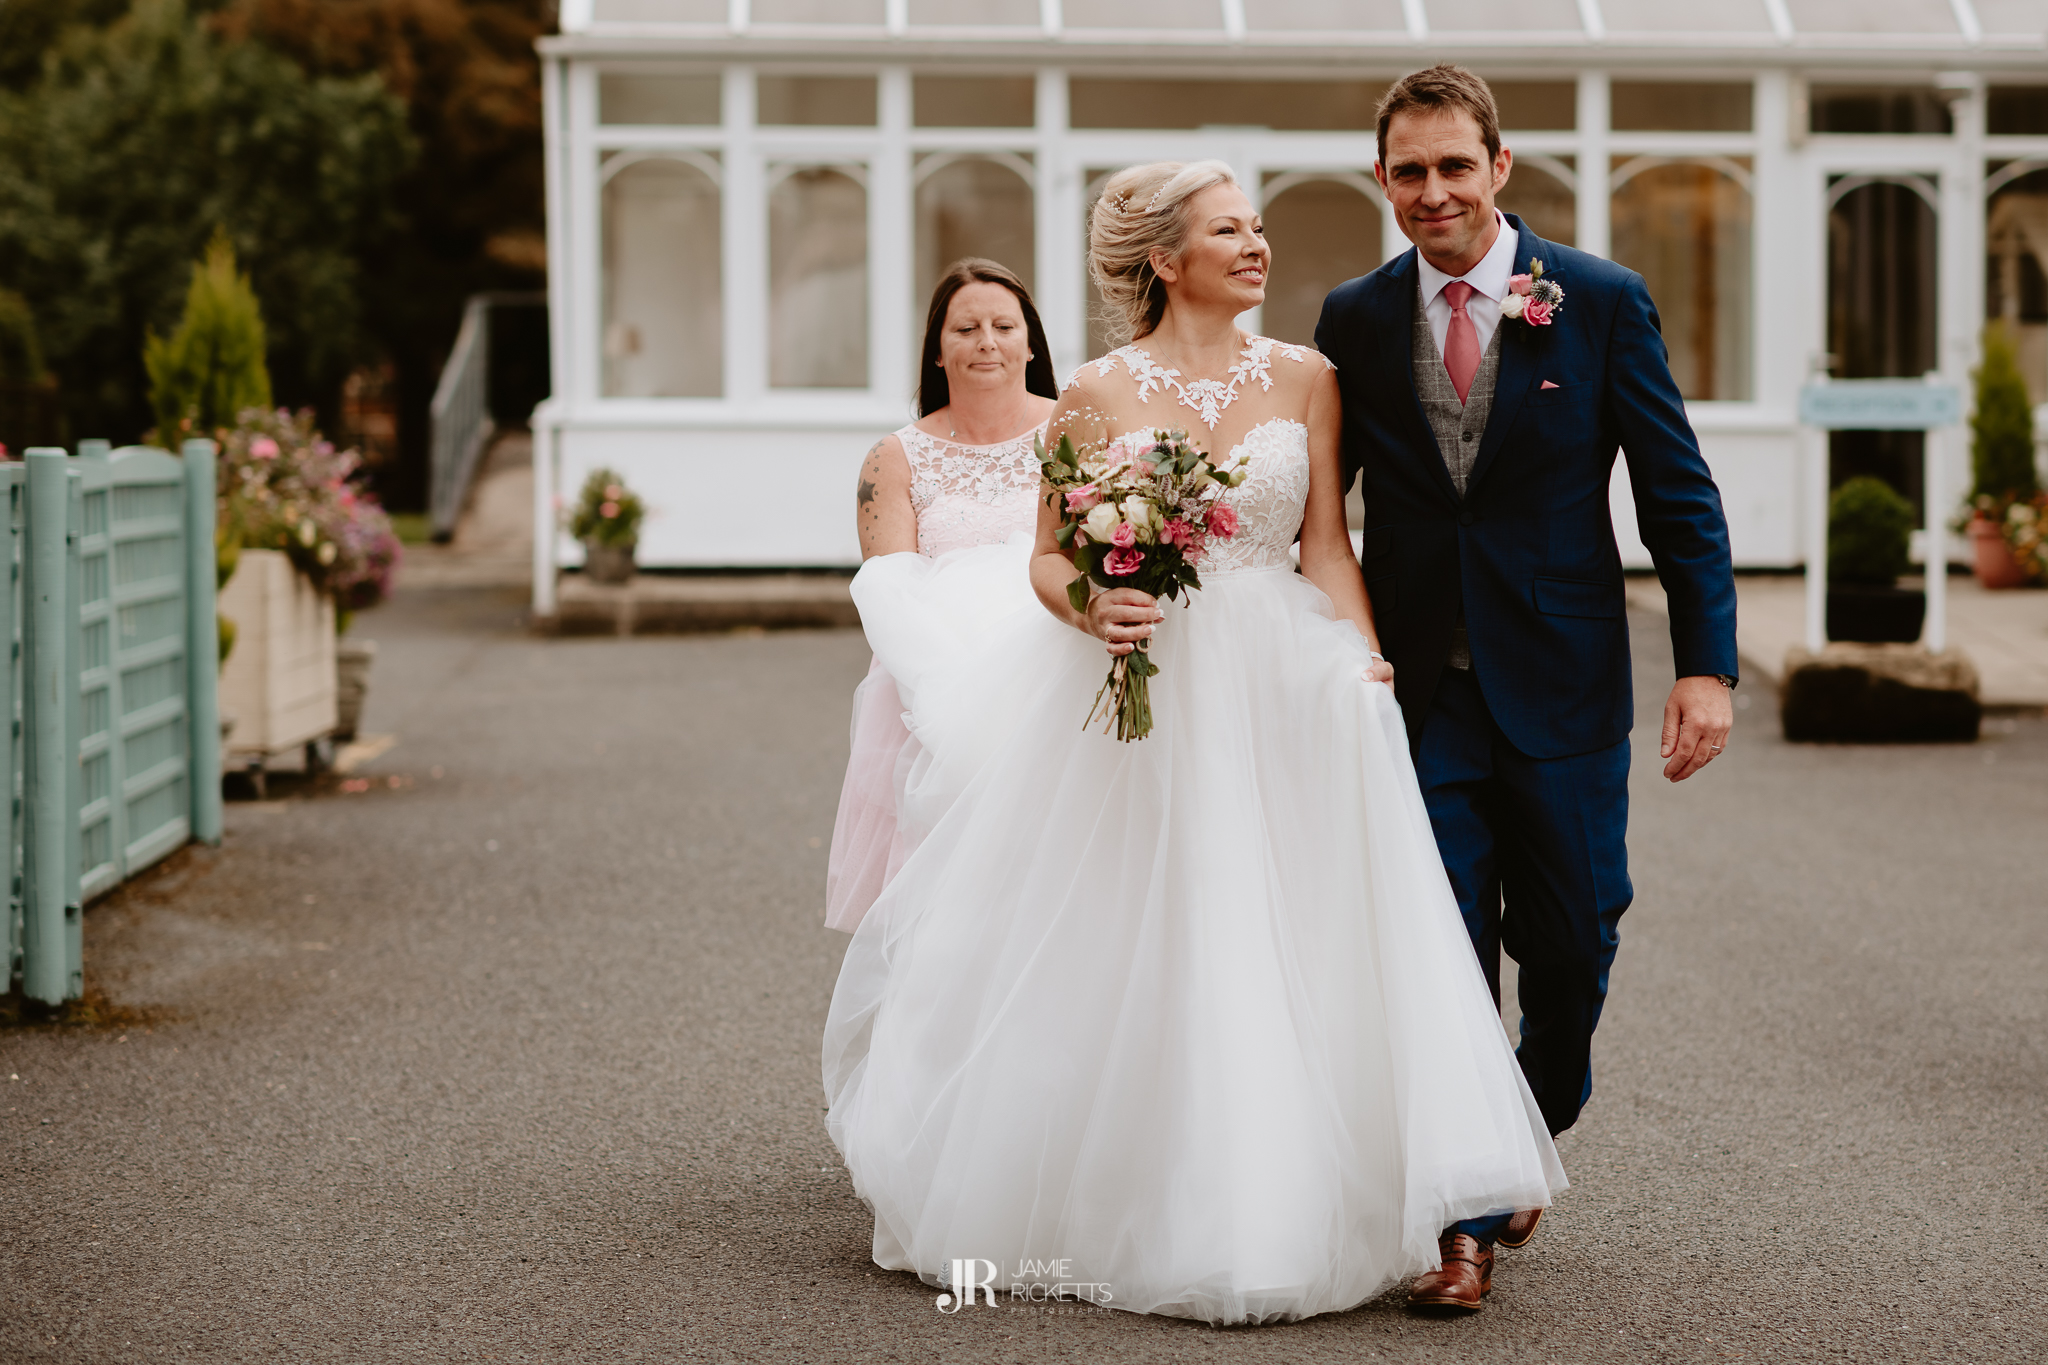 Wroxeter-Hotel-Wedding-Photography-In-Shropshire-By-Shropshire-Wedding-Photographer-Jamie-Ricketts-074.JPG